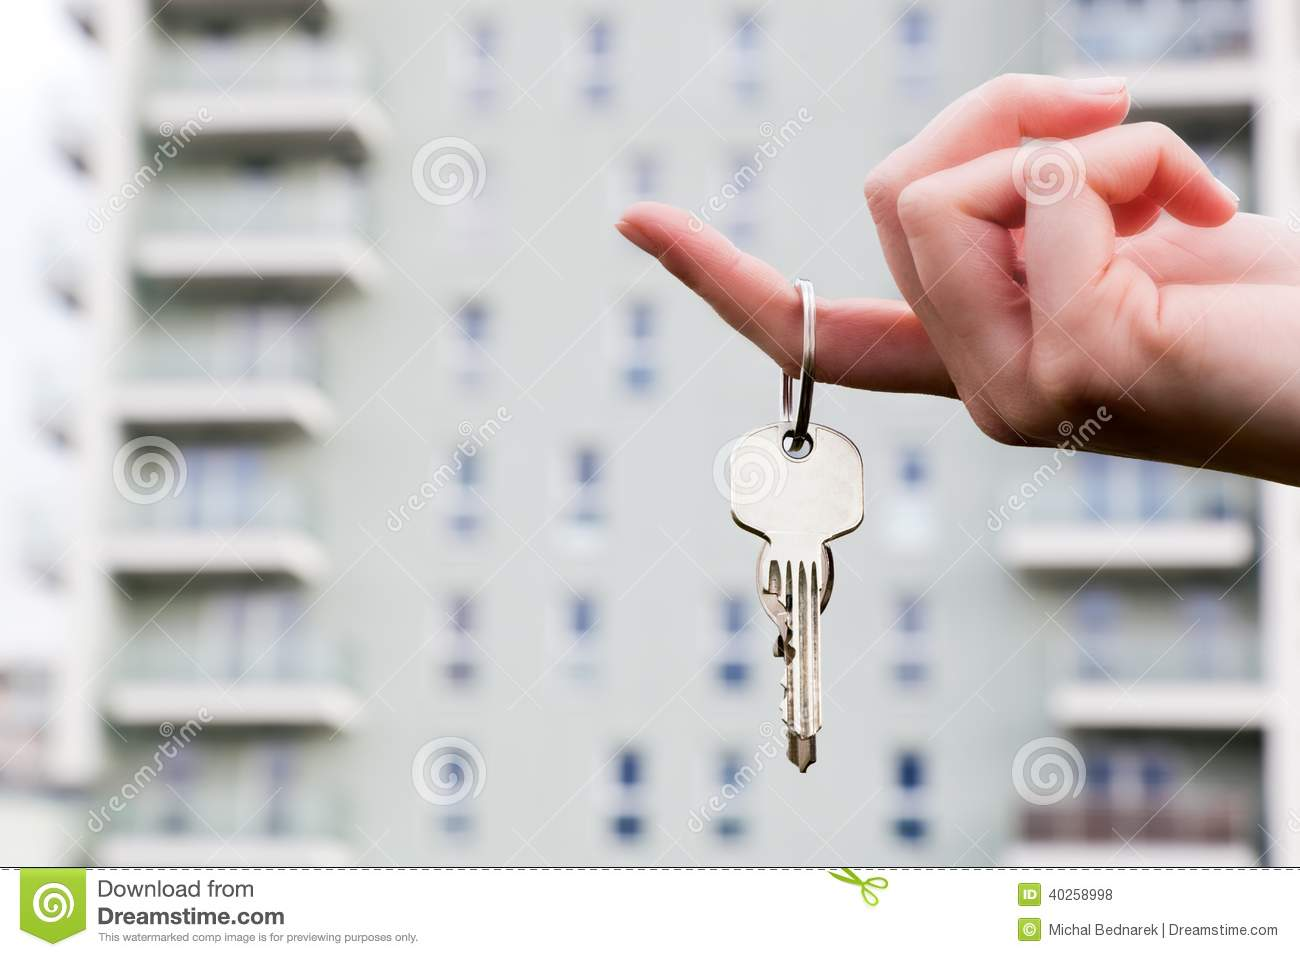 A real estate agent holding keys to a new apartment in her hands.